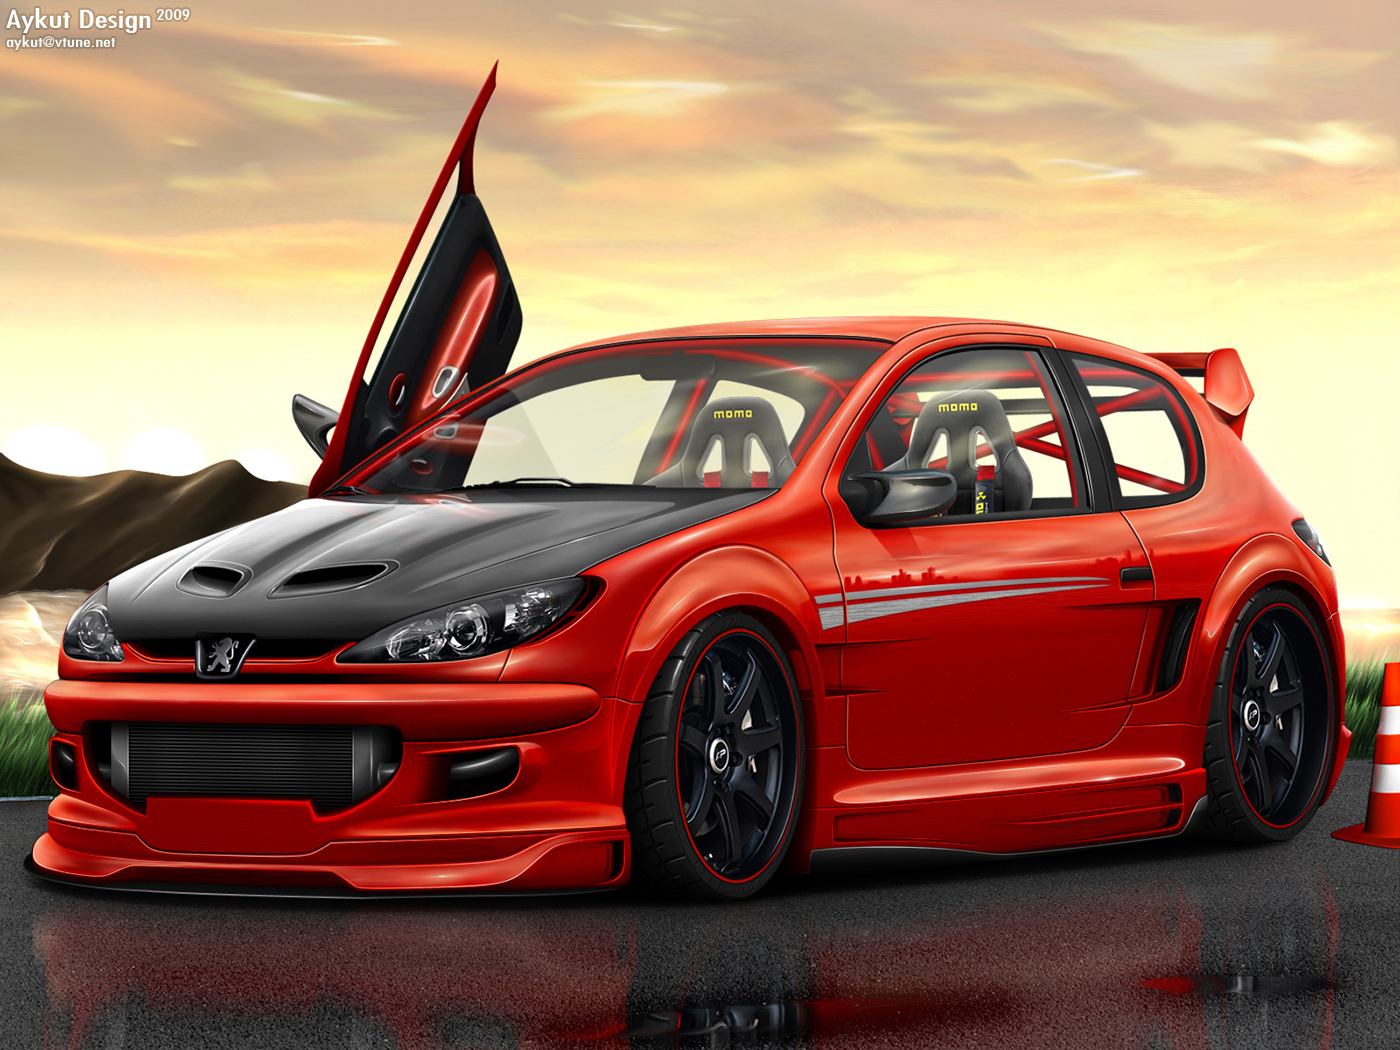 Peugeot Images Peugeot 206 Tuning Hd Wallpaper And Background Photos 14363575